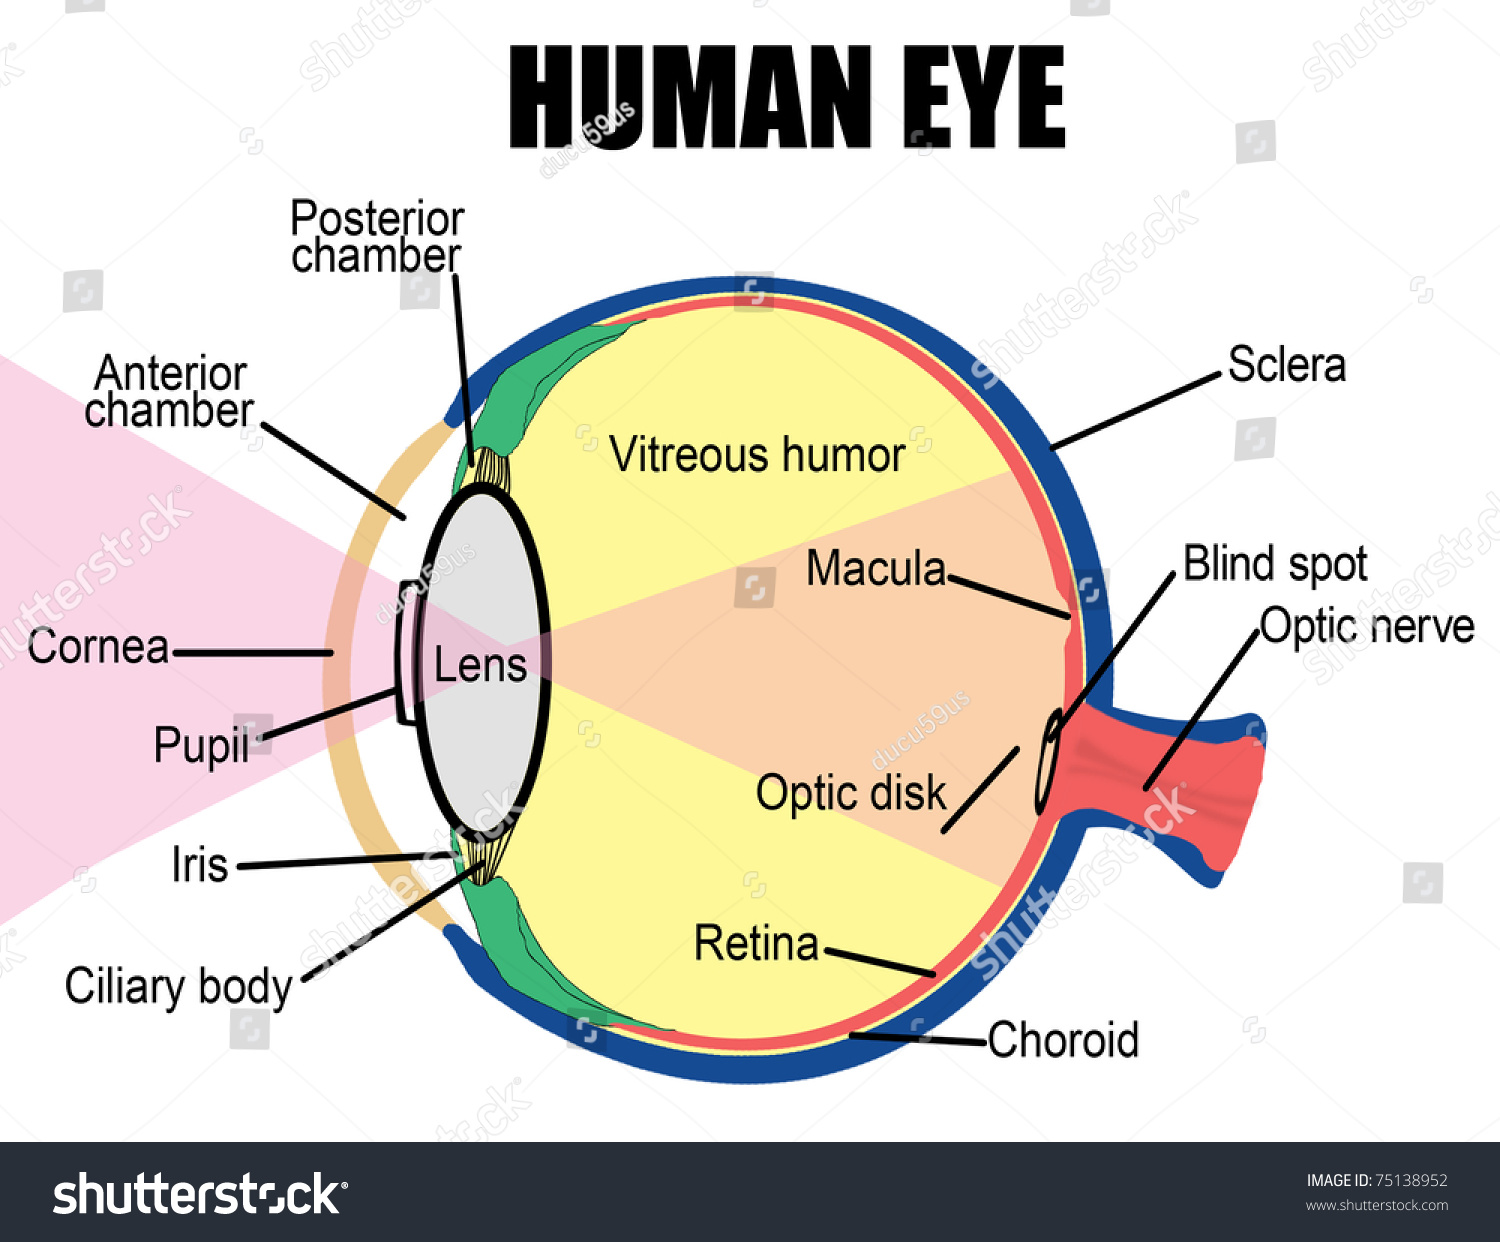 Anatomy Human Eye Vector Illustration For Stock Vector